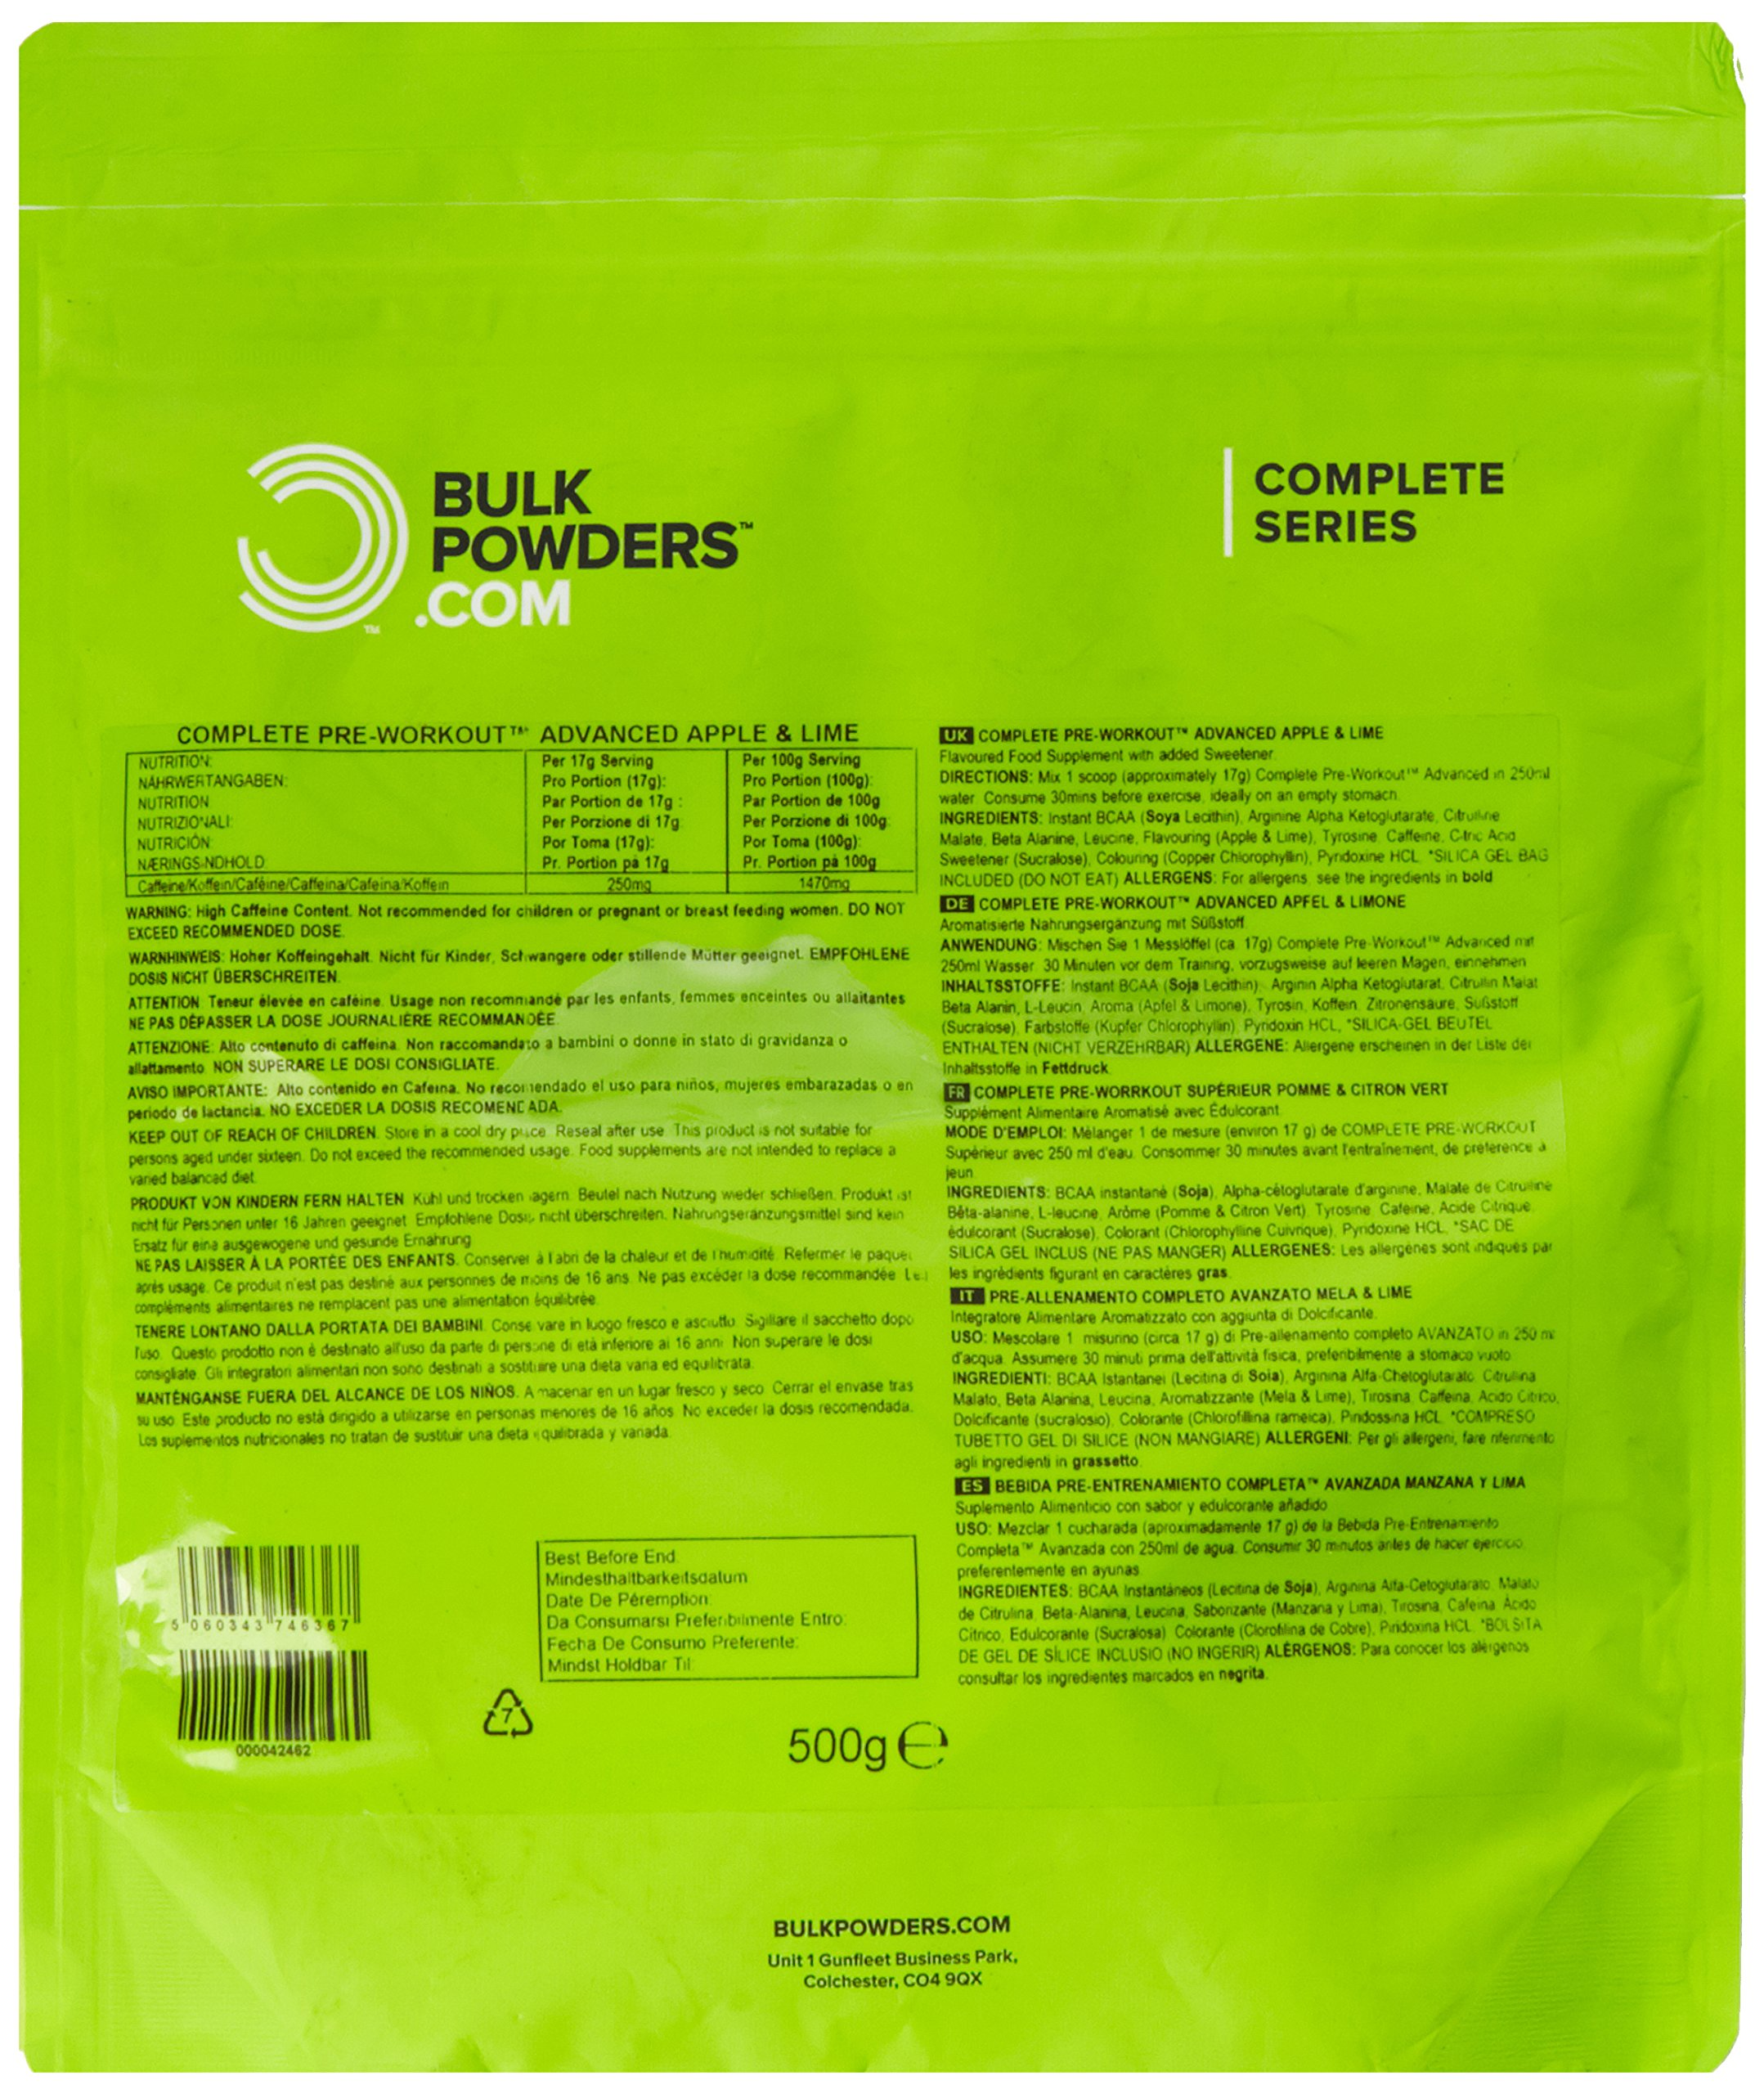 91hQLZVlTbL - BULK POWDERS Complete Pre Workout Advanced, Apple and Lime, 500 g